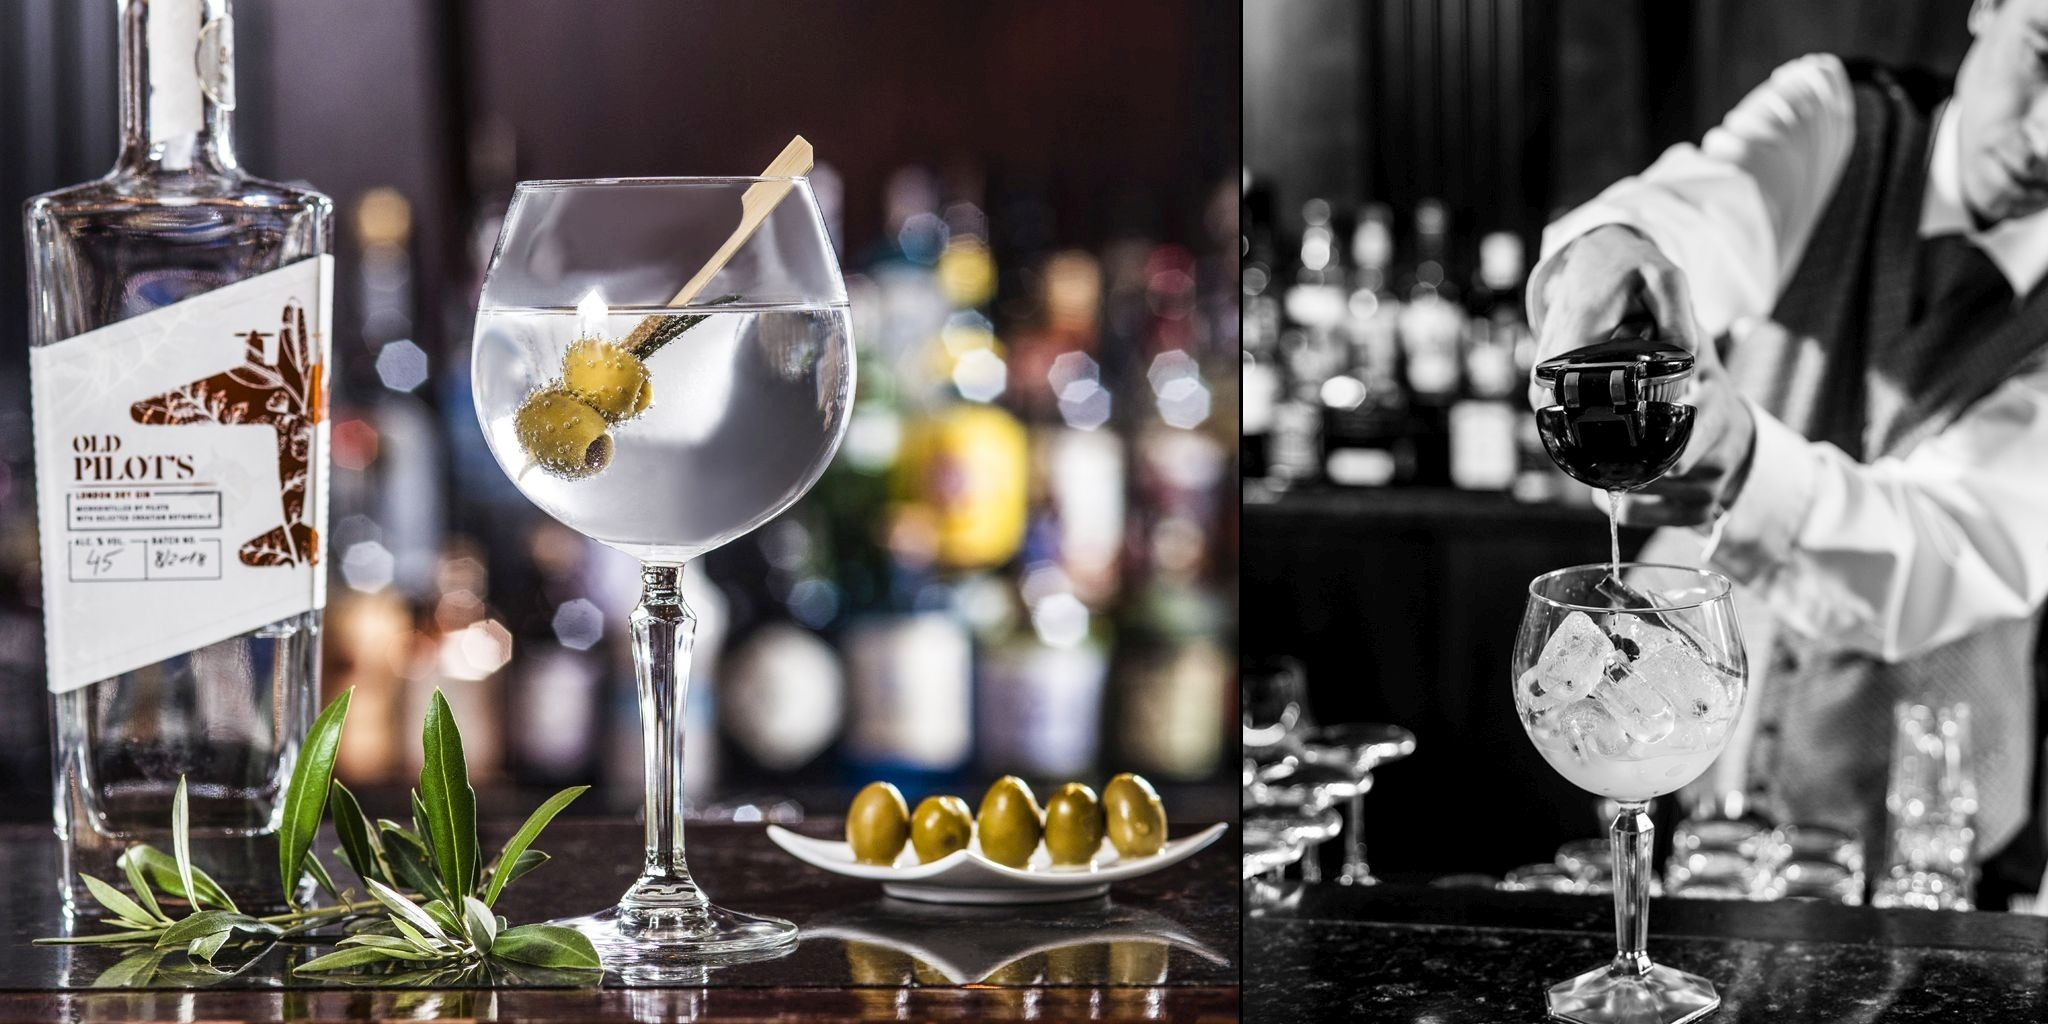 The Ultimate Gin & Tonic Experience